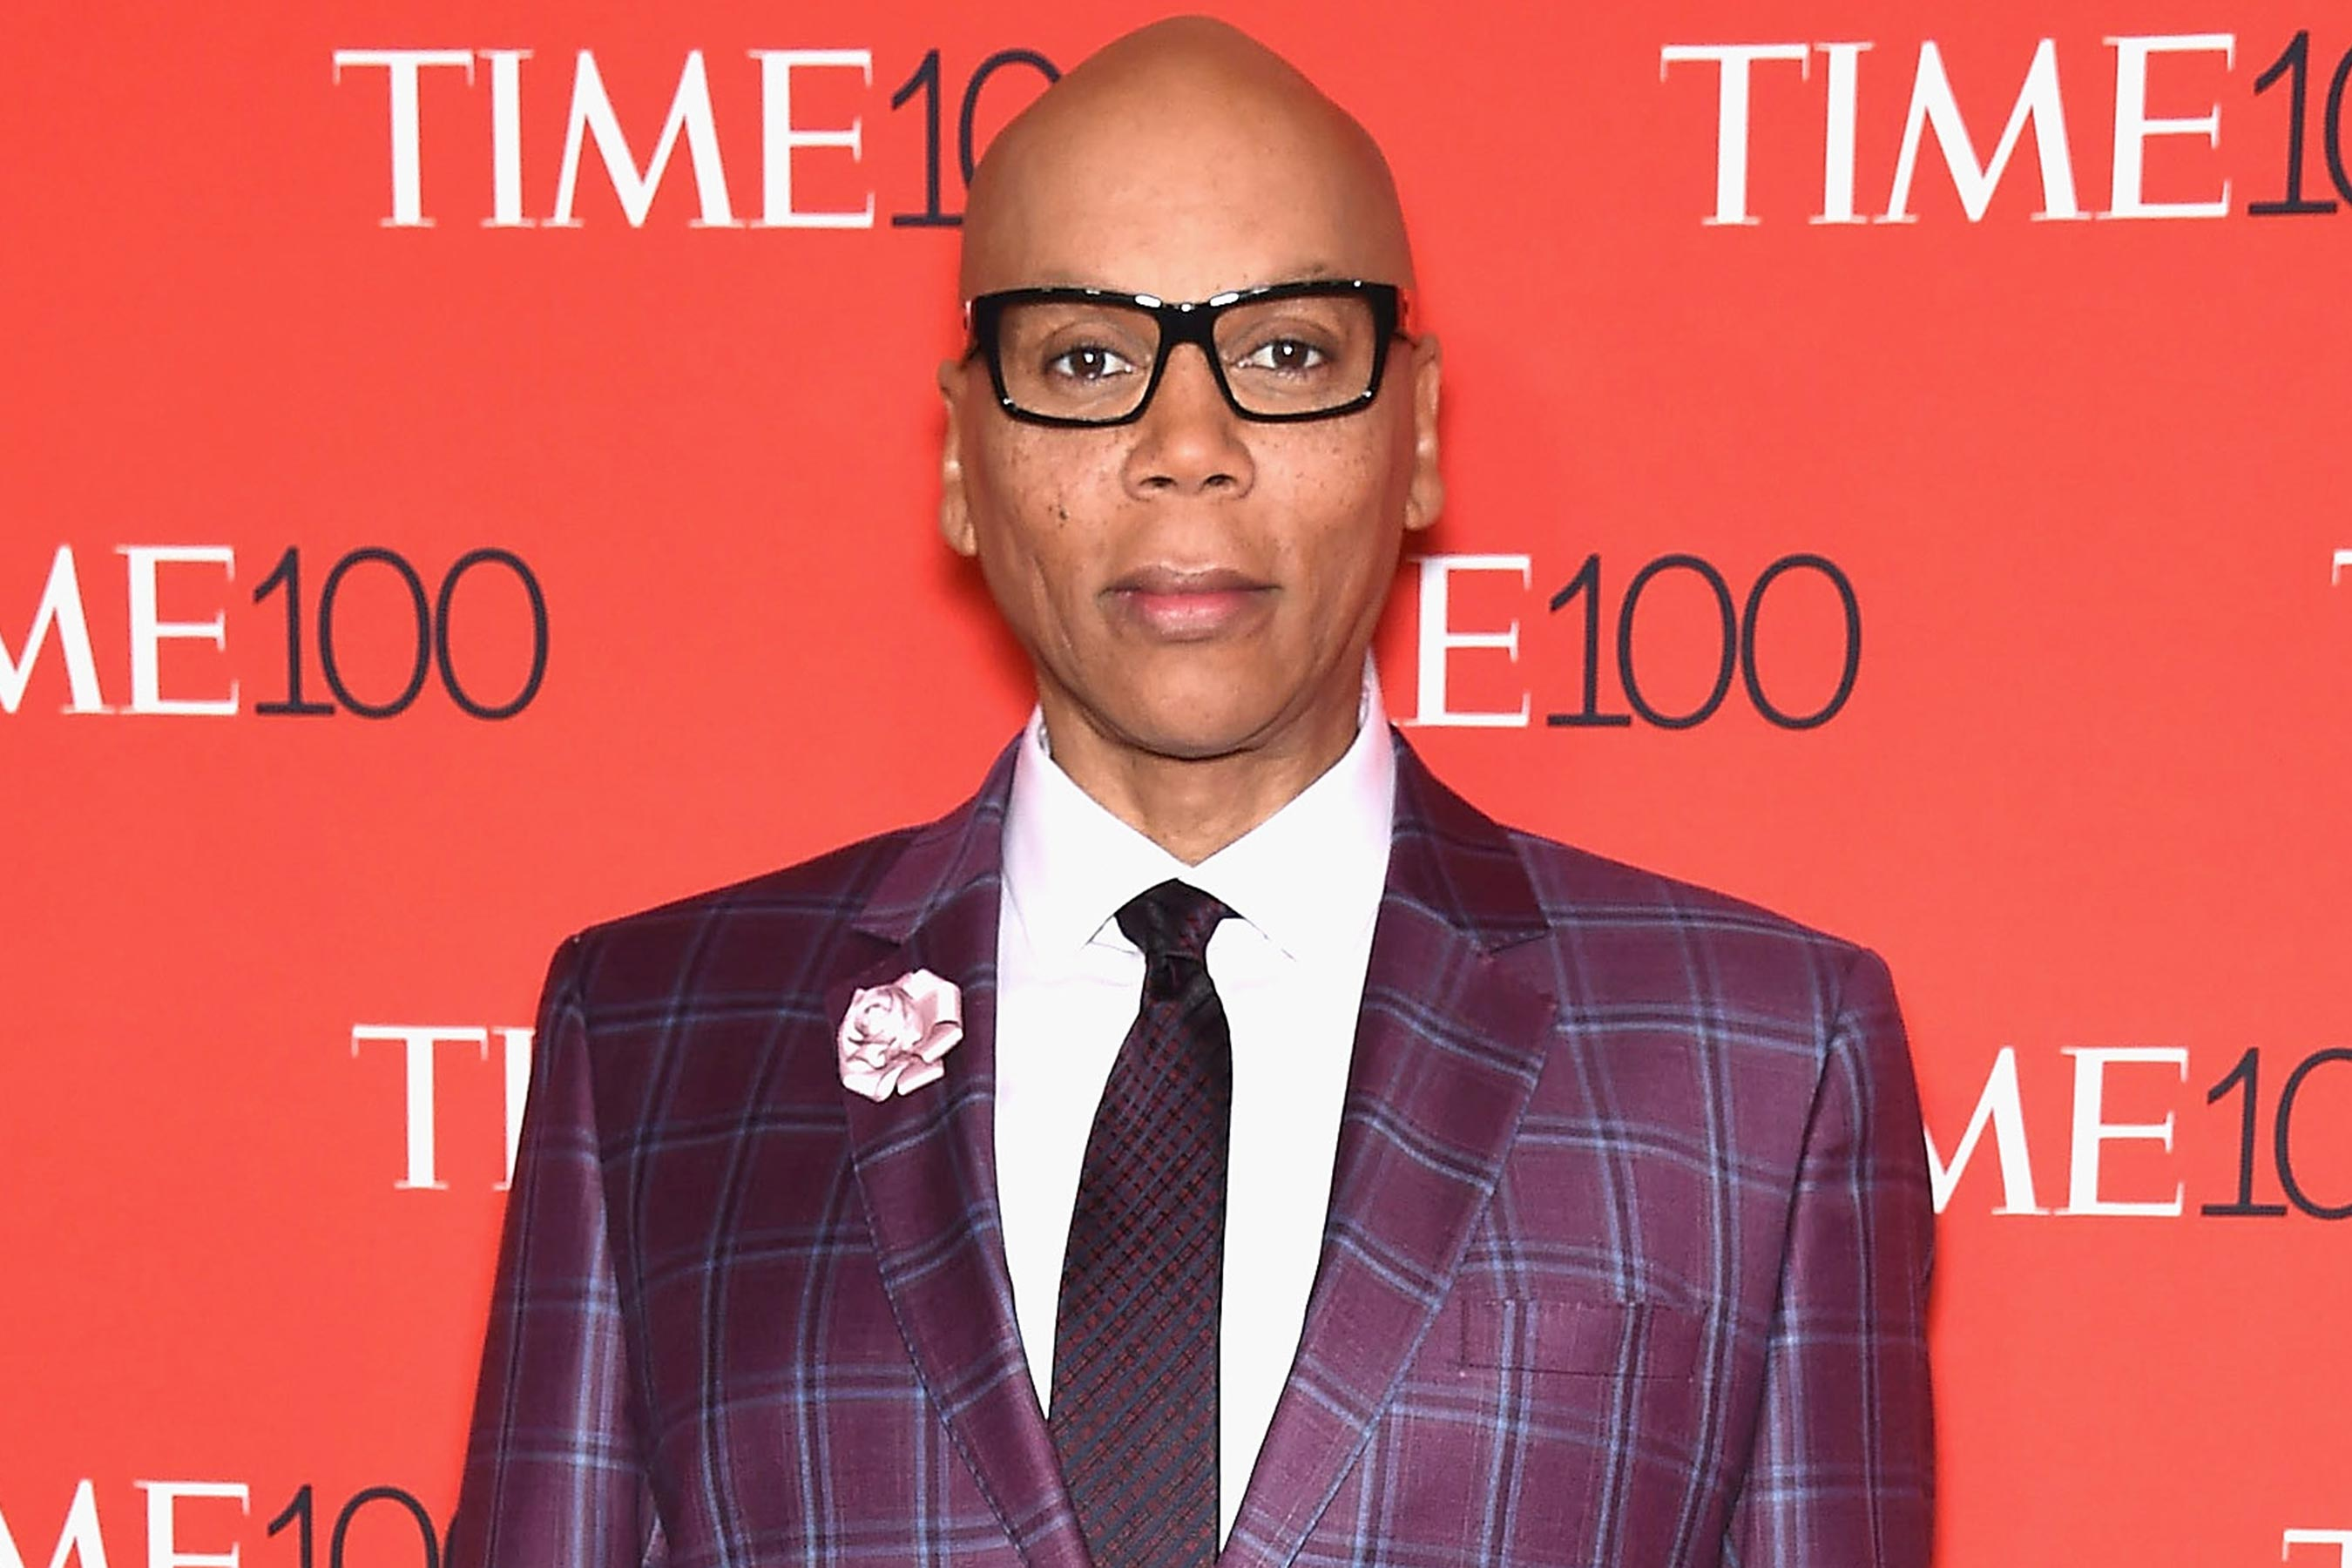 RuPaul apologizes for controversial transgender comments